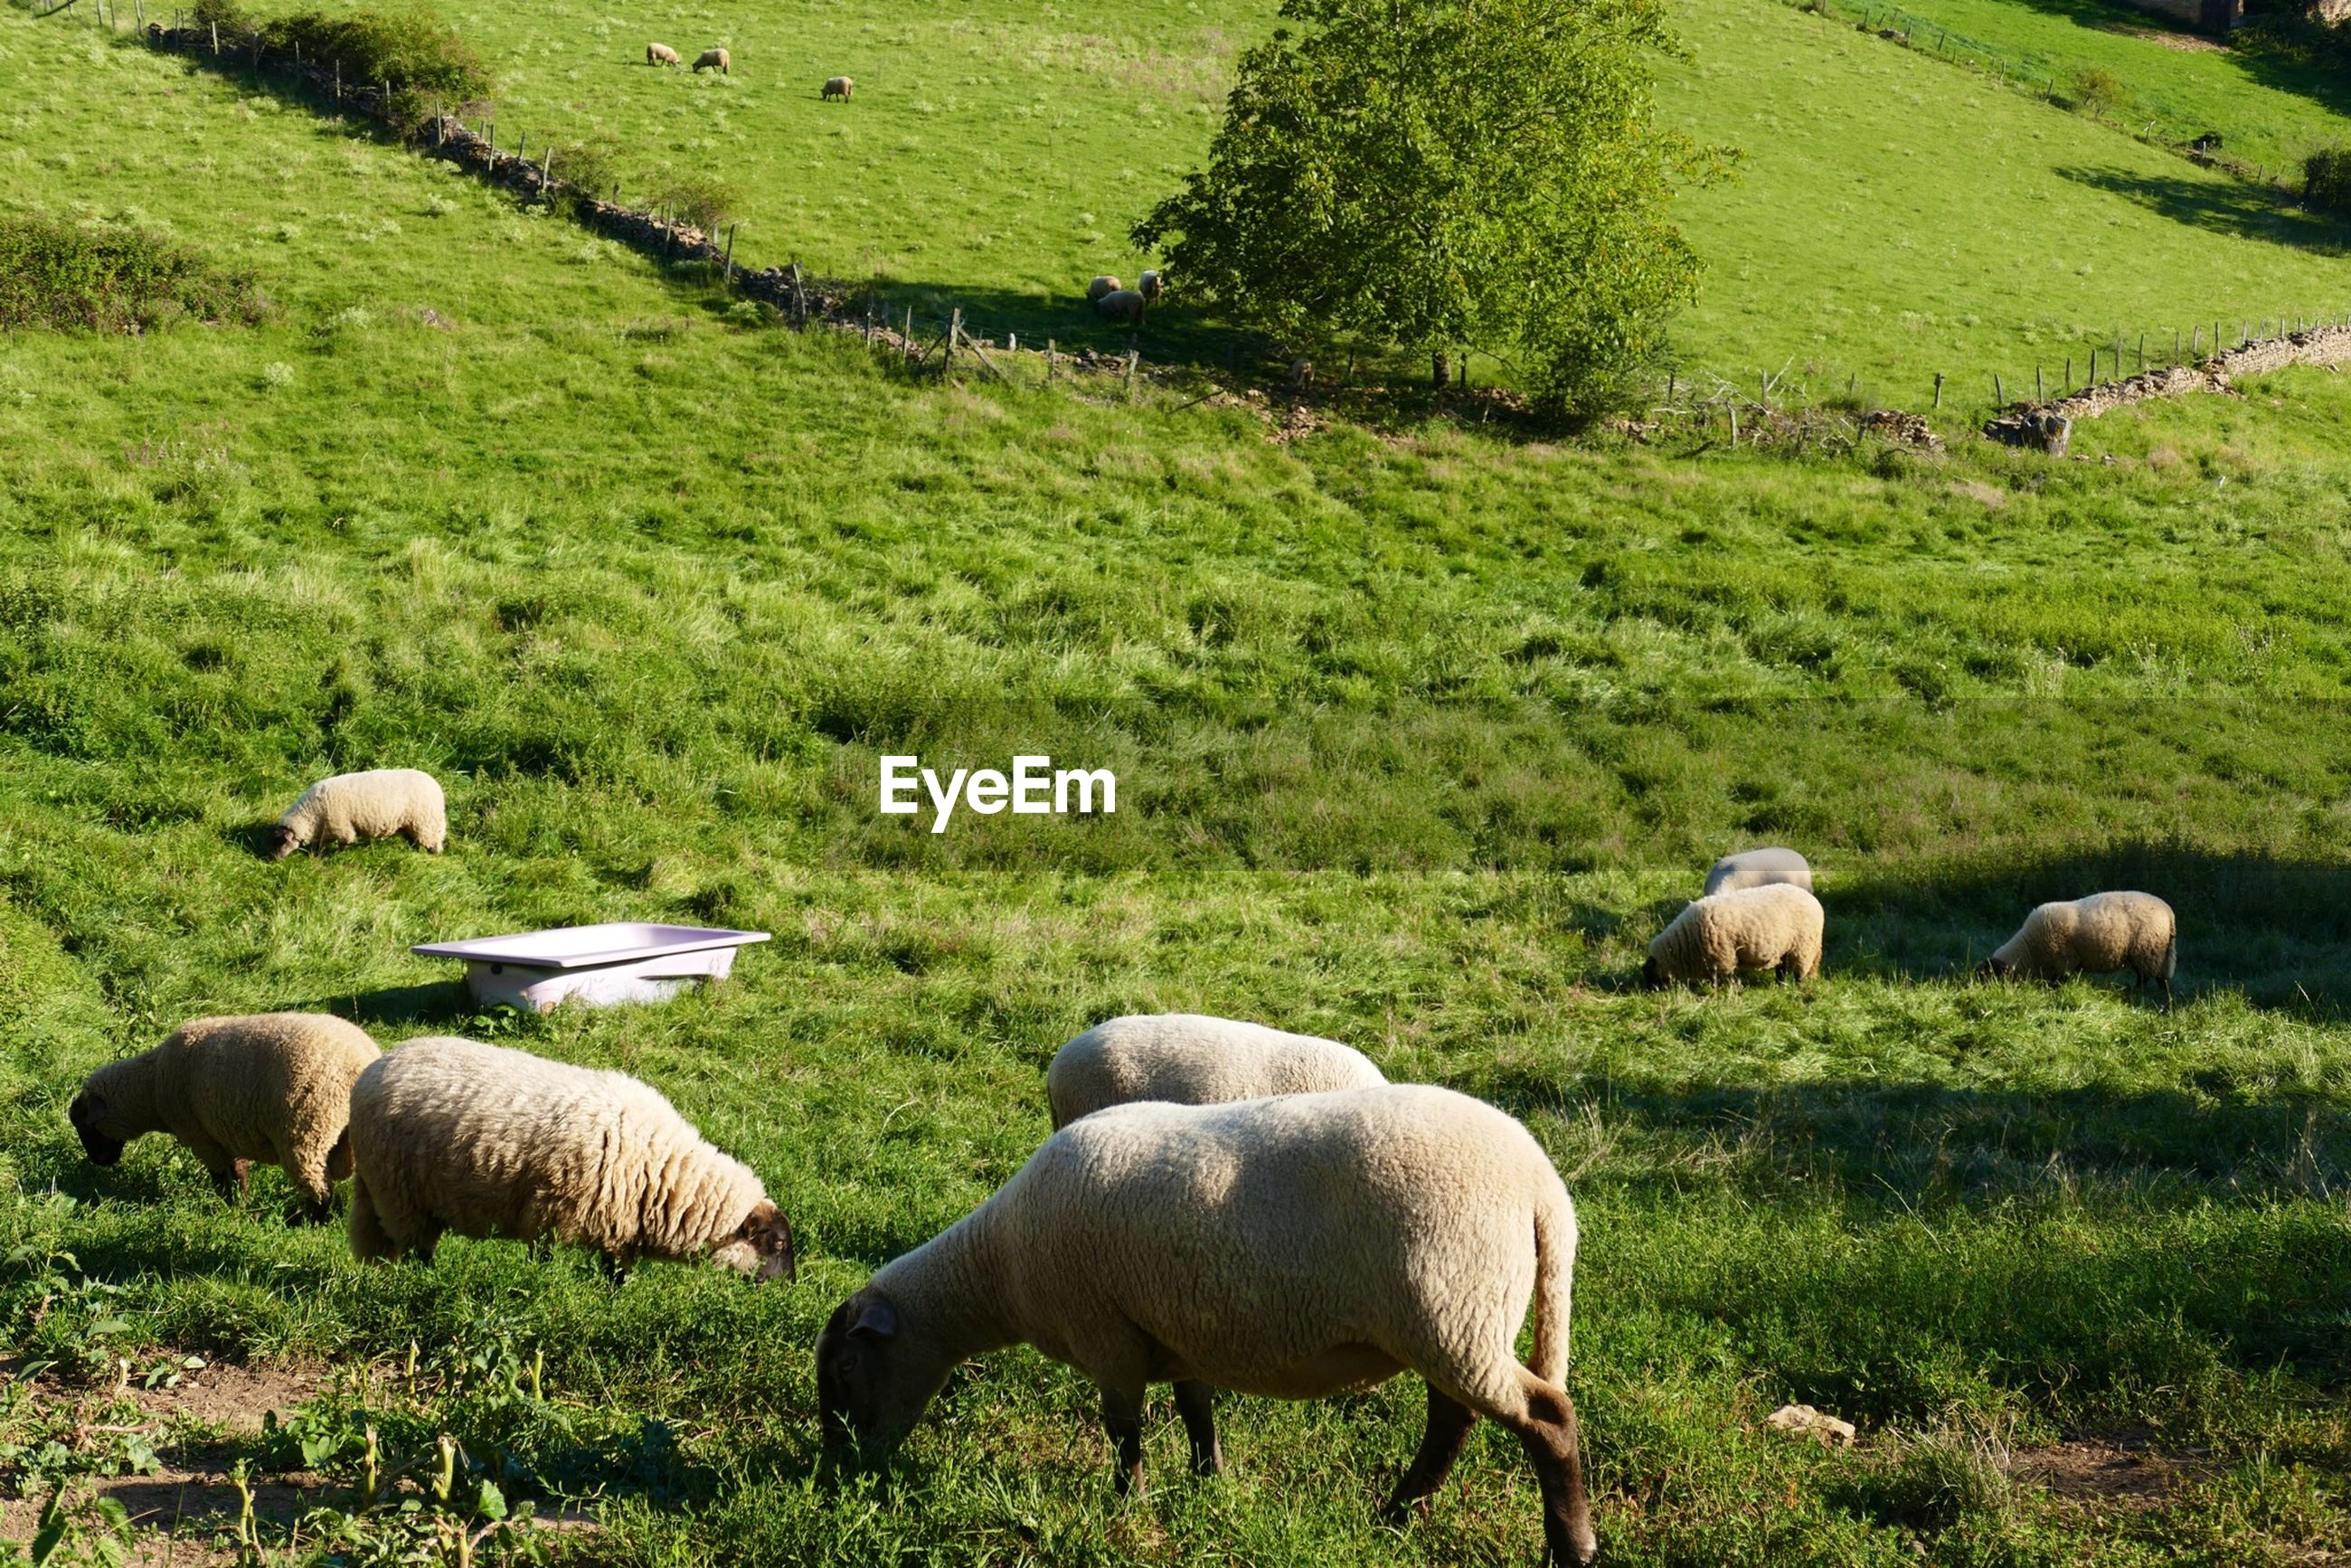 View of sheep in pasture